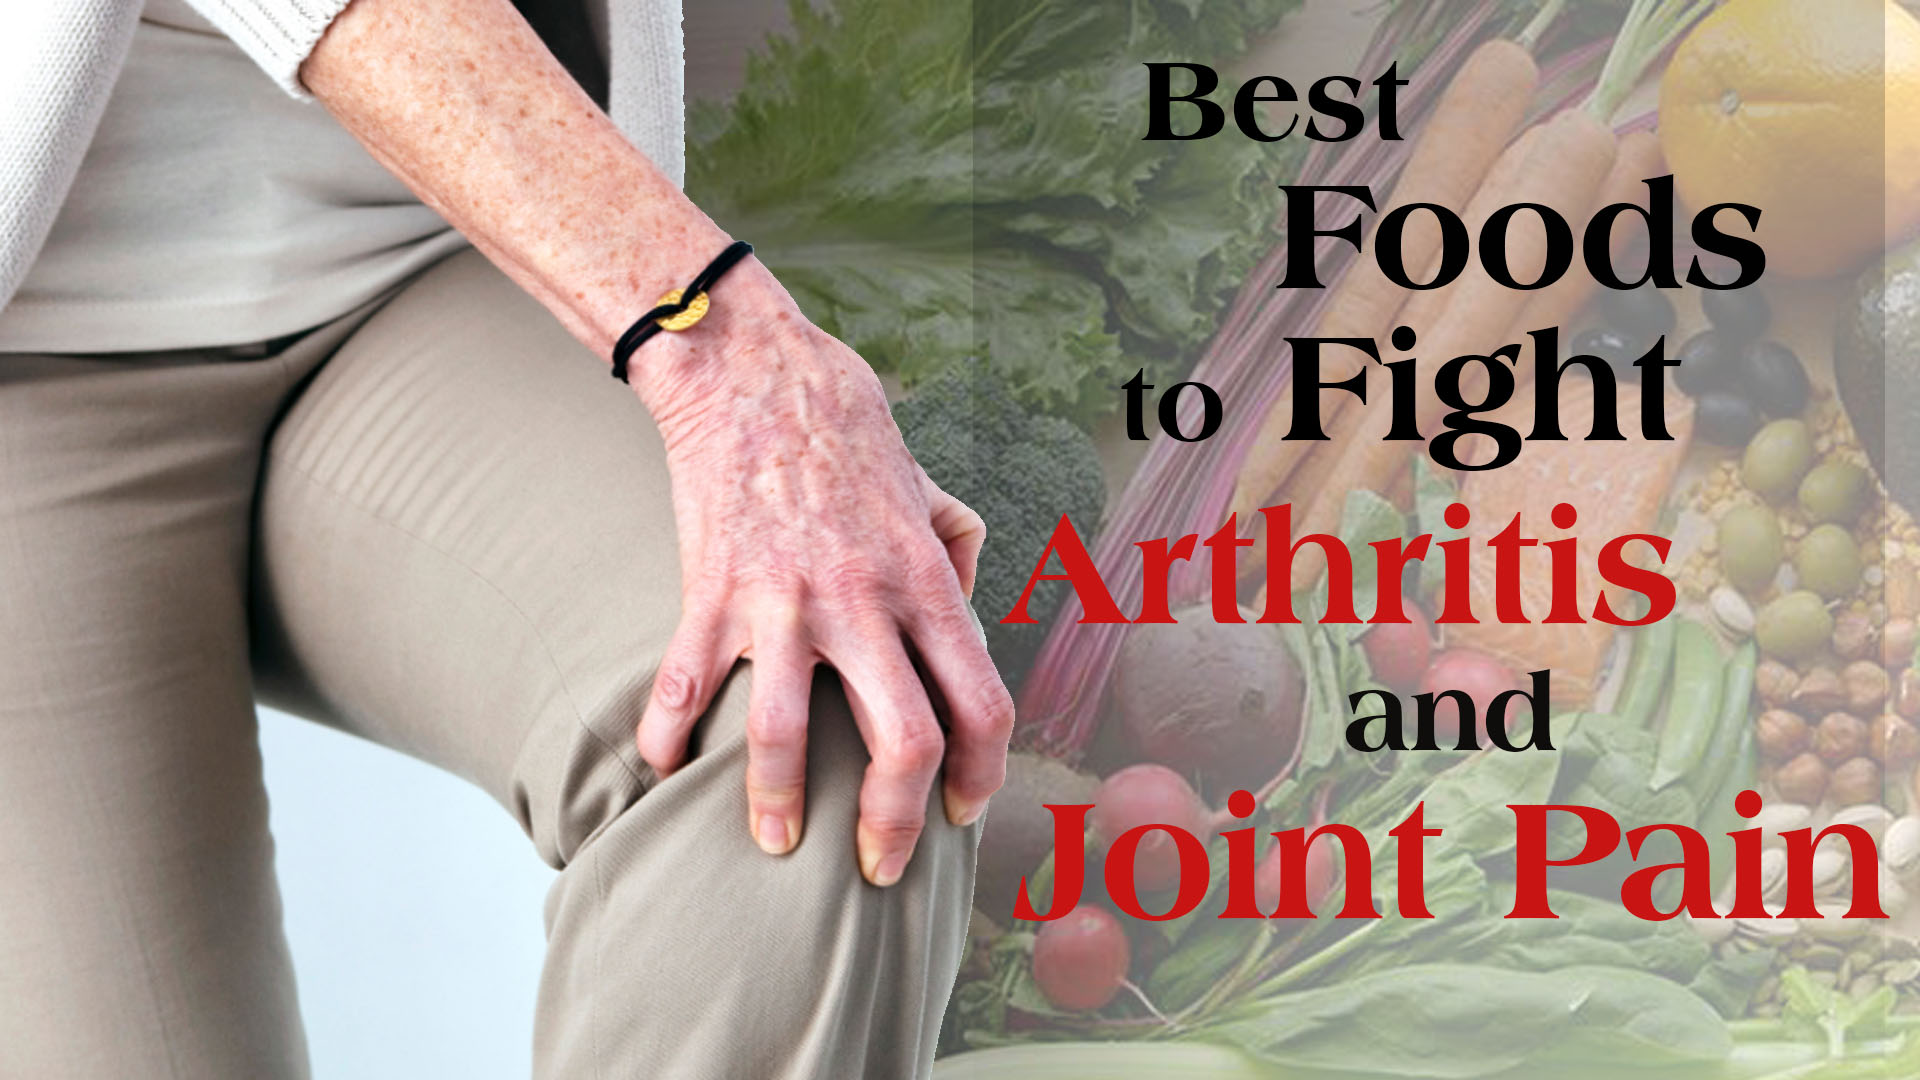 Best Foods to Fight Arthritis and Joint Pain